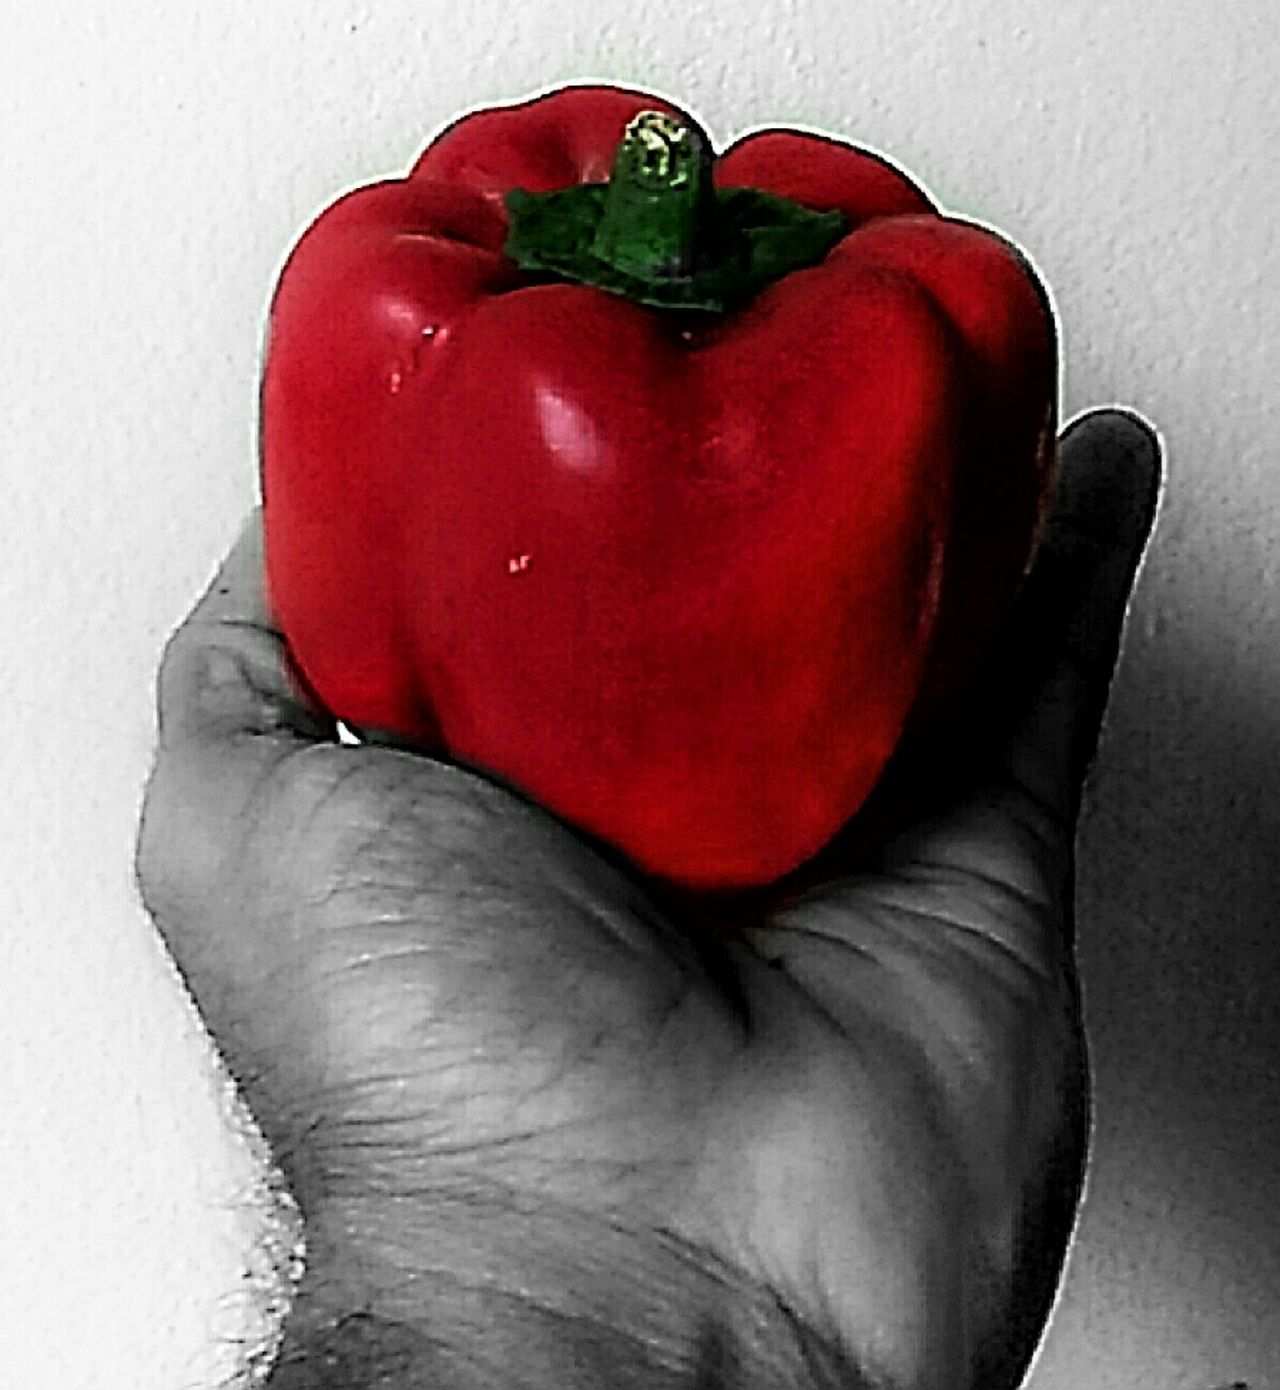 Heart Shape Red One Person Human Hand Human Body Part Mobliephotography Colorsplash EyeEm Best Shots IMography Malephotographerofthemonth EyeEm Gallery Eyeem Market EyeEm Incredible India Eyeem Photography Alwaysonmymind Something I Like Be Happy And Smile With Love From India💚 truly...urs... Nitin